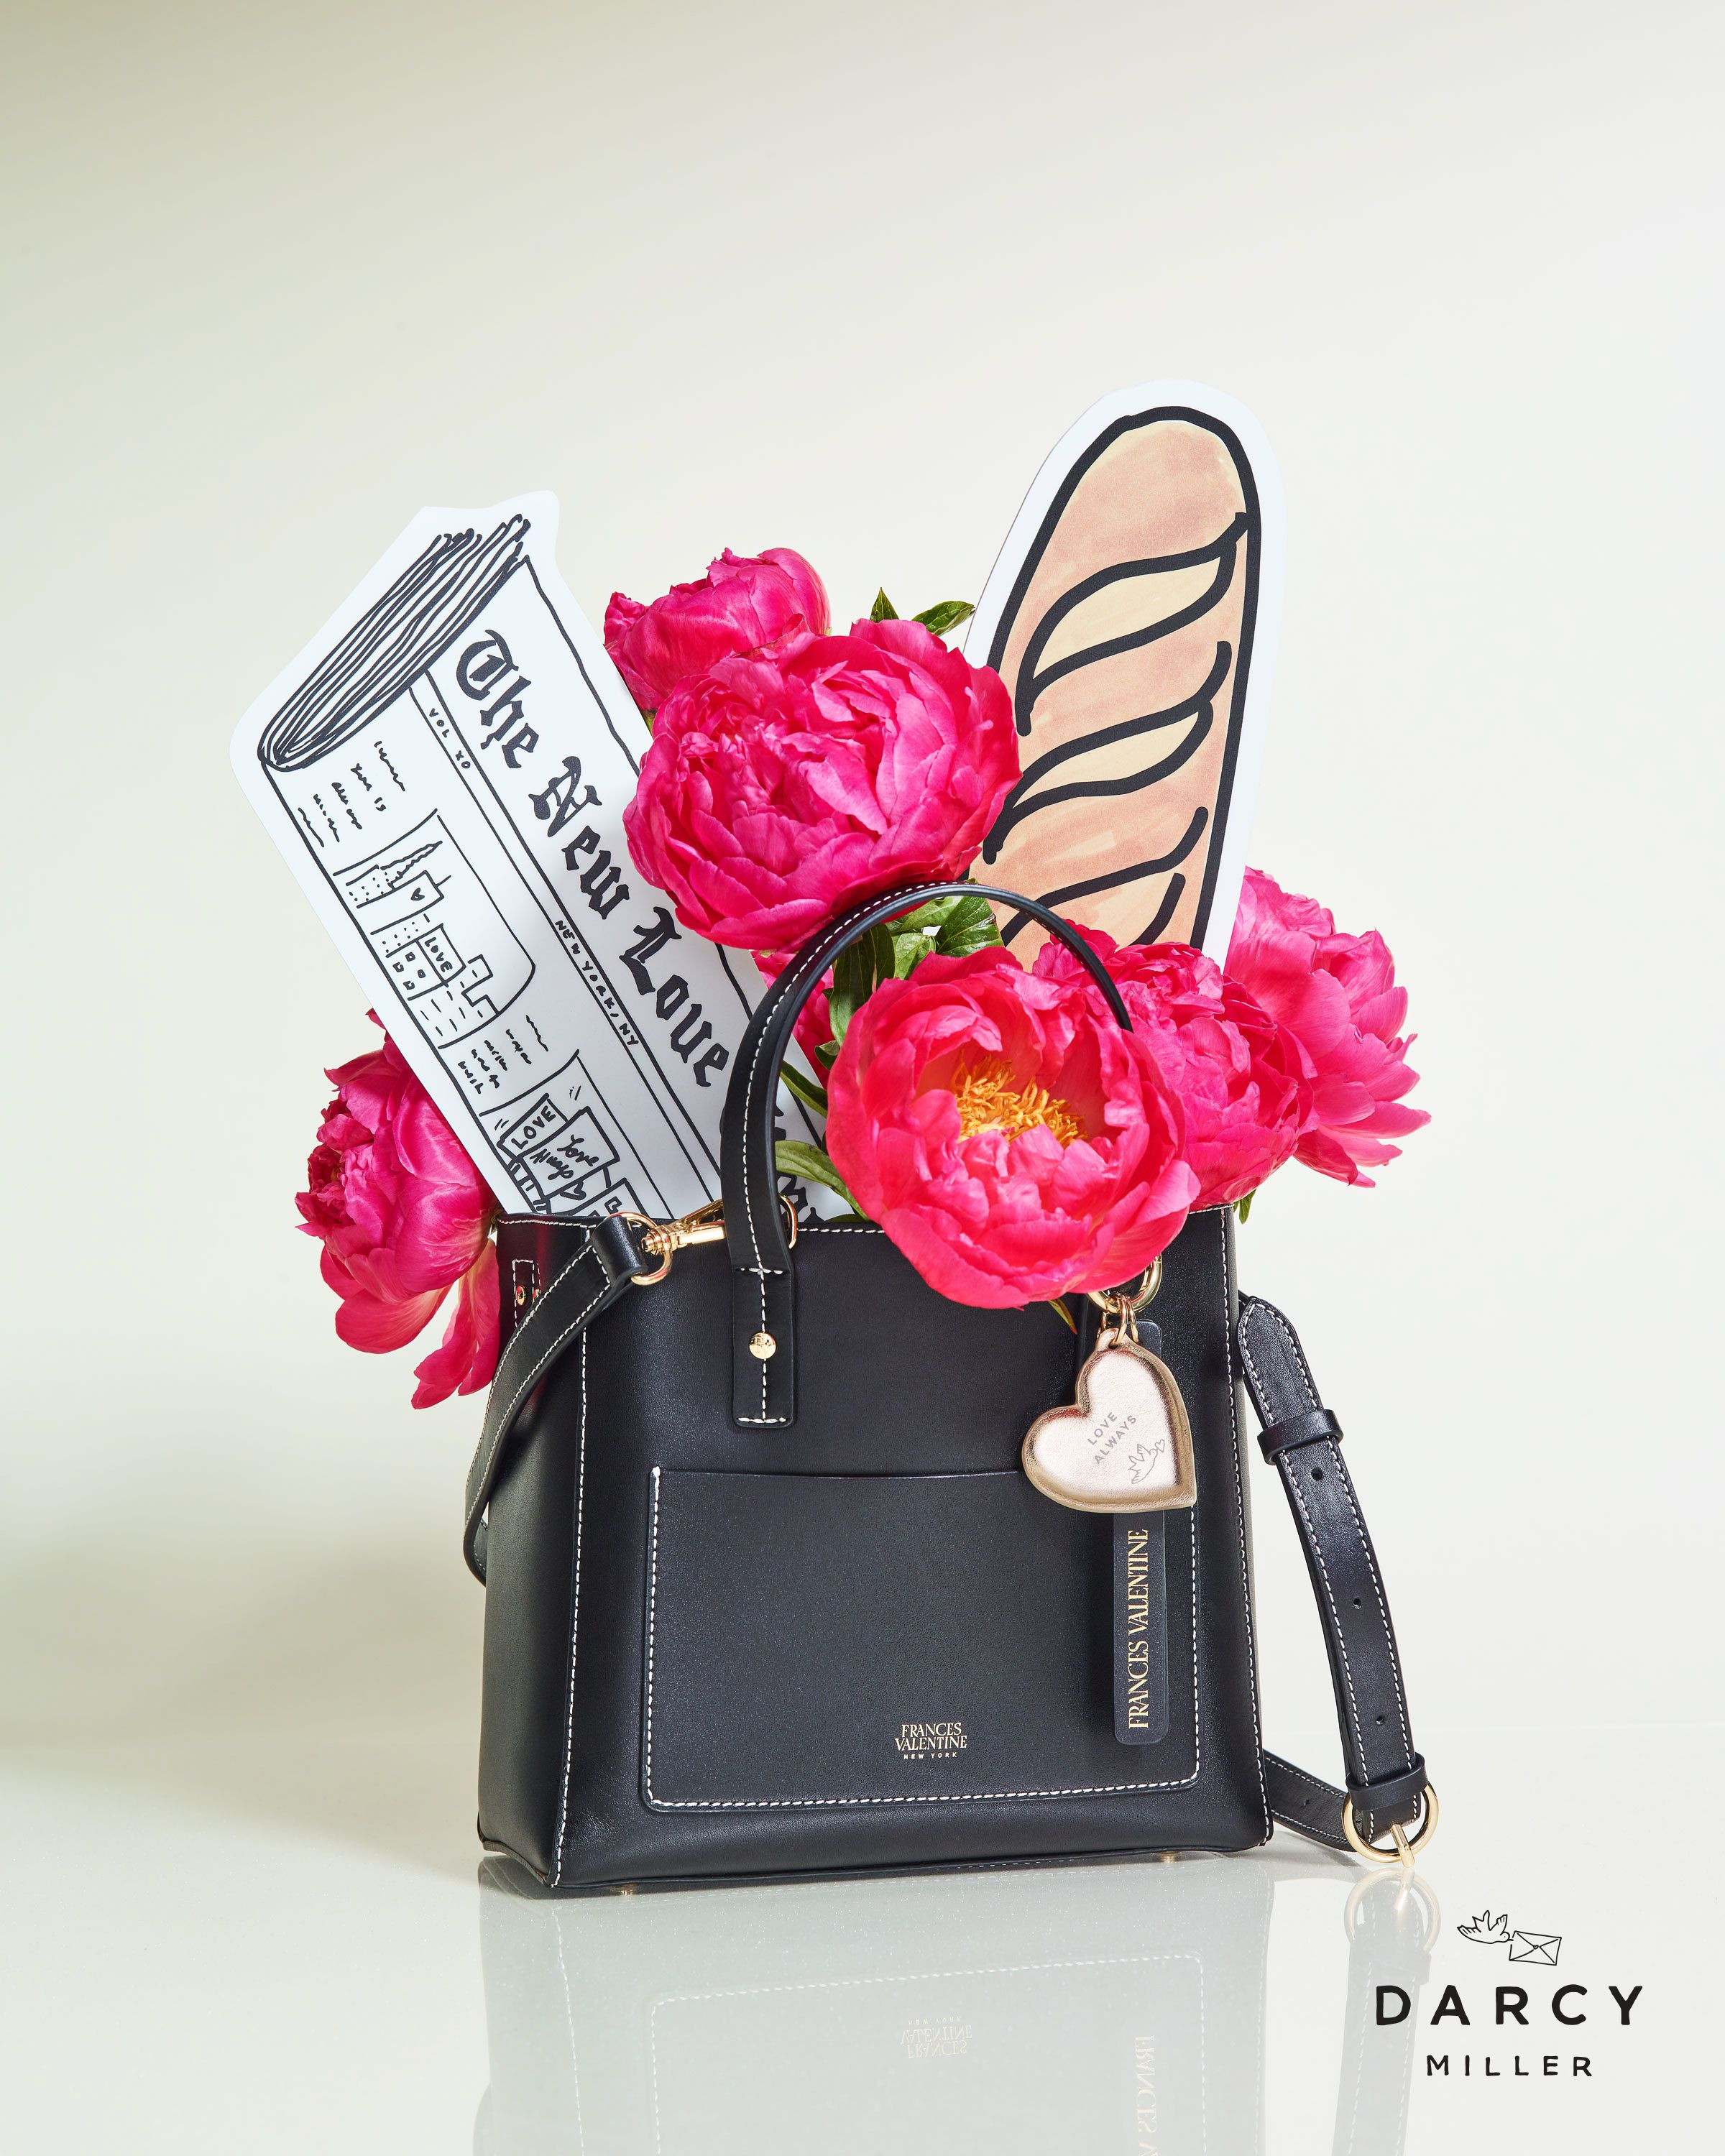 bf61d9e781 Frances Valentine x Darcy Miller Chloe Tote—in timeless black leather or  party-ready gold with a gold, heart-shaped keychain in the signature  lovebird shape ...